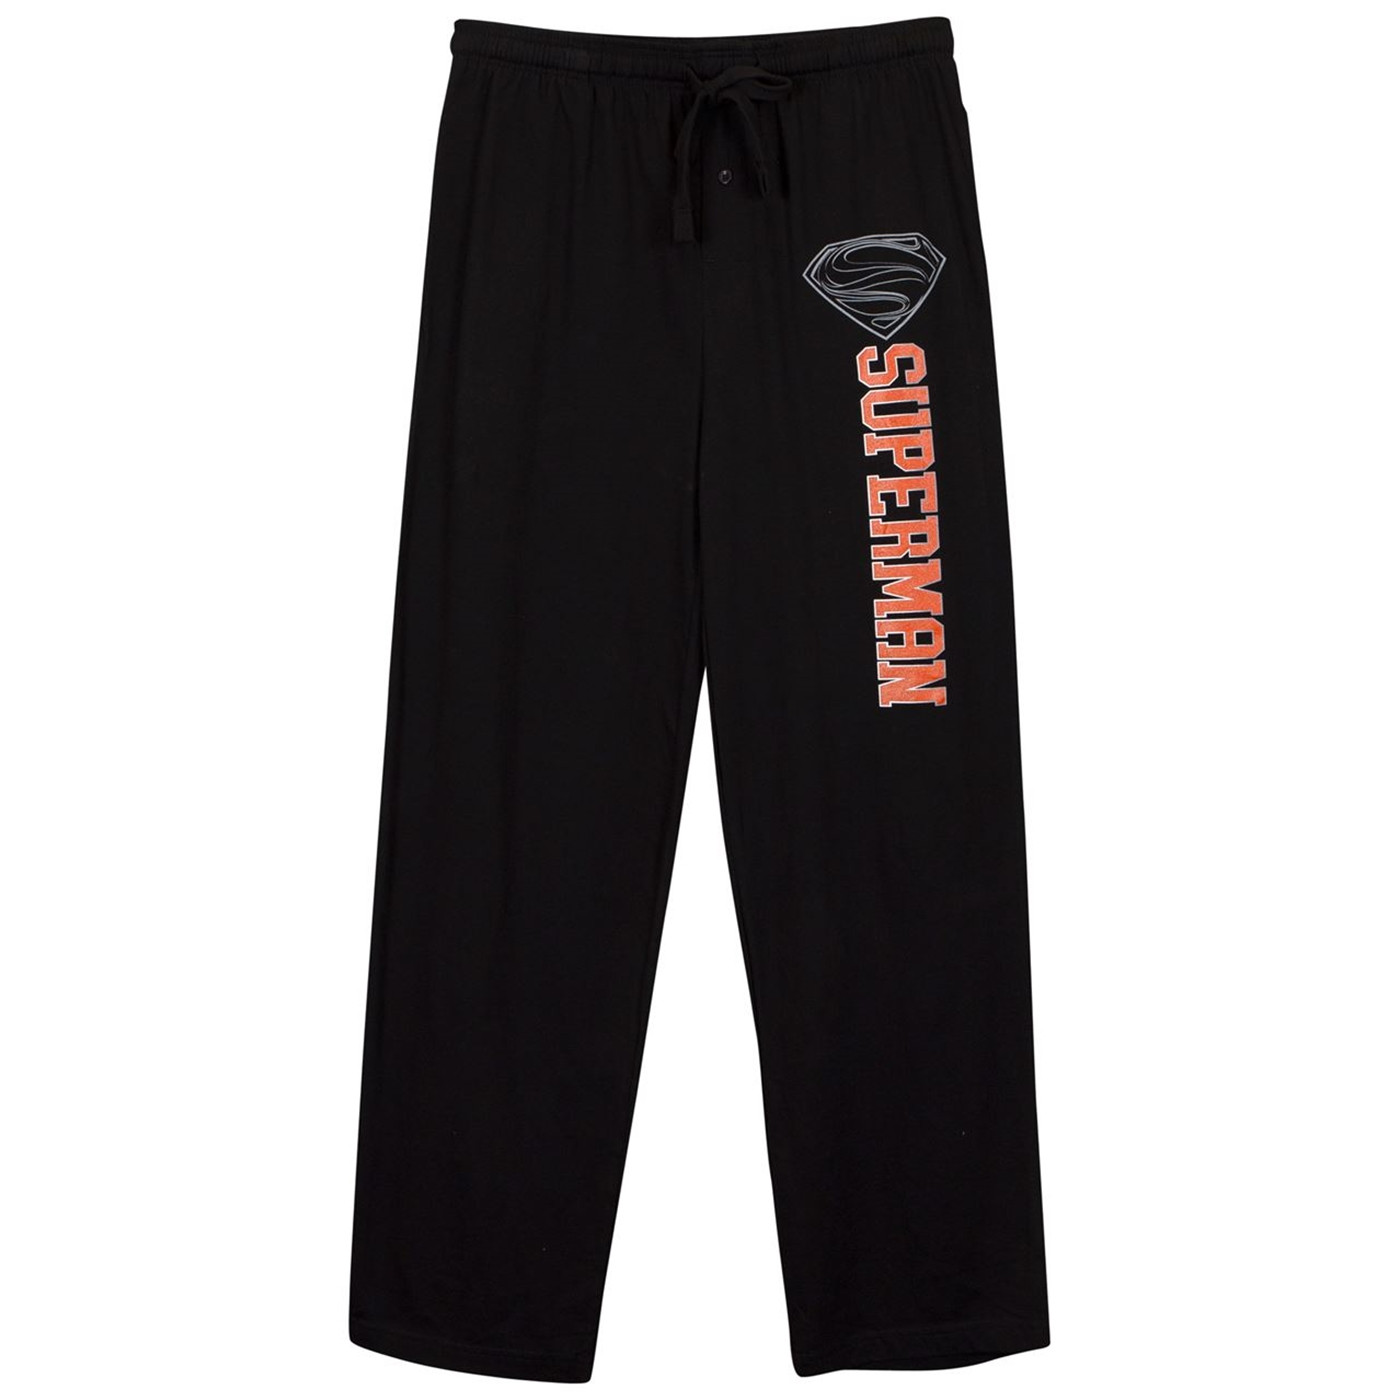 Superman Silver S Logo Black Unisex Sleep Pants